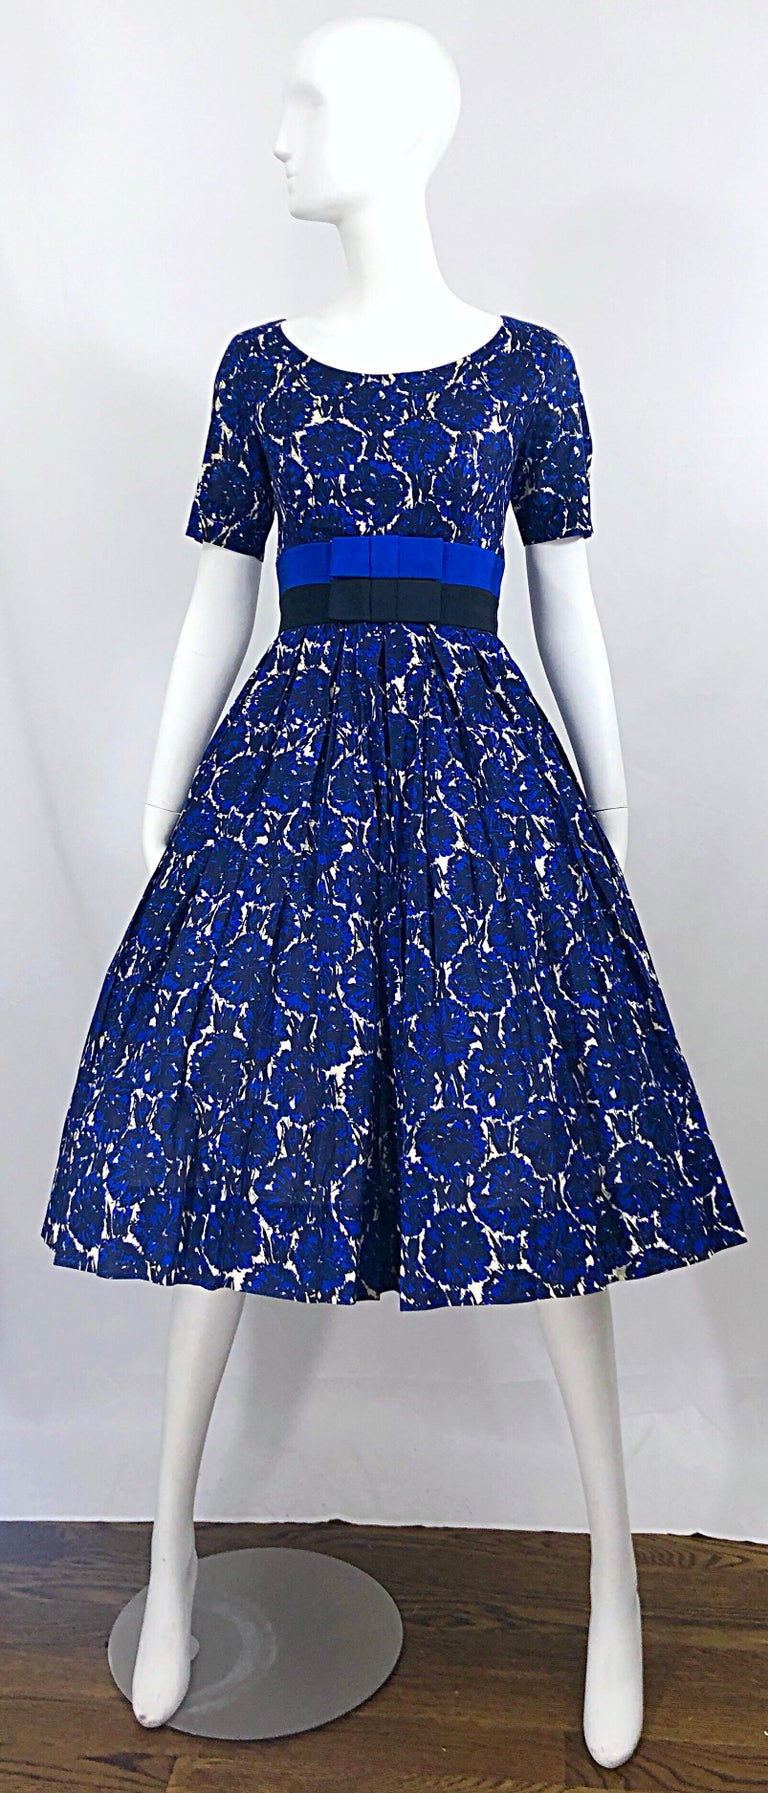 1950s Bonwit Teller Demi Couture Blue Abstract Floral Fit n' Flare Vintage Dress For Sale 10